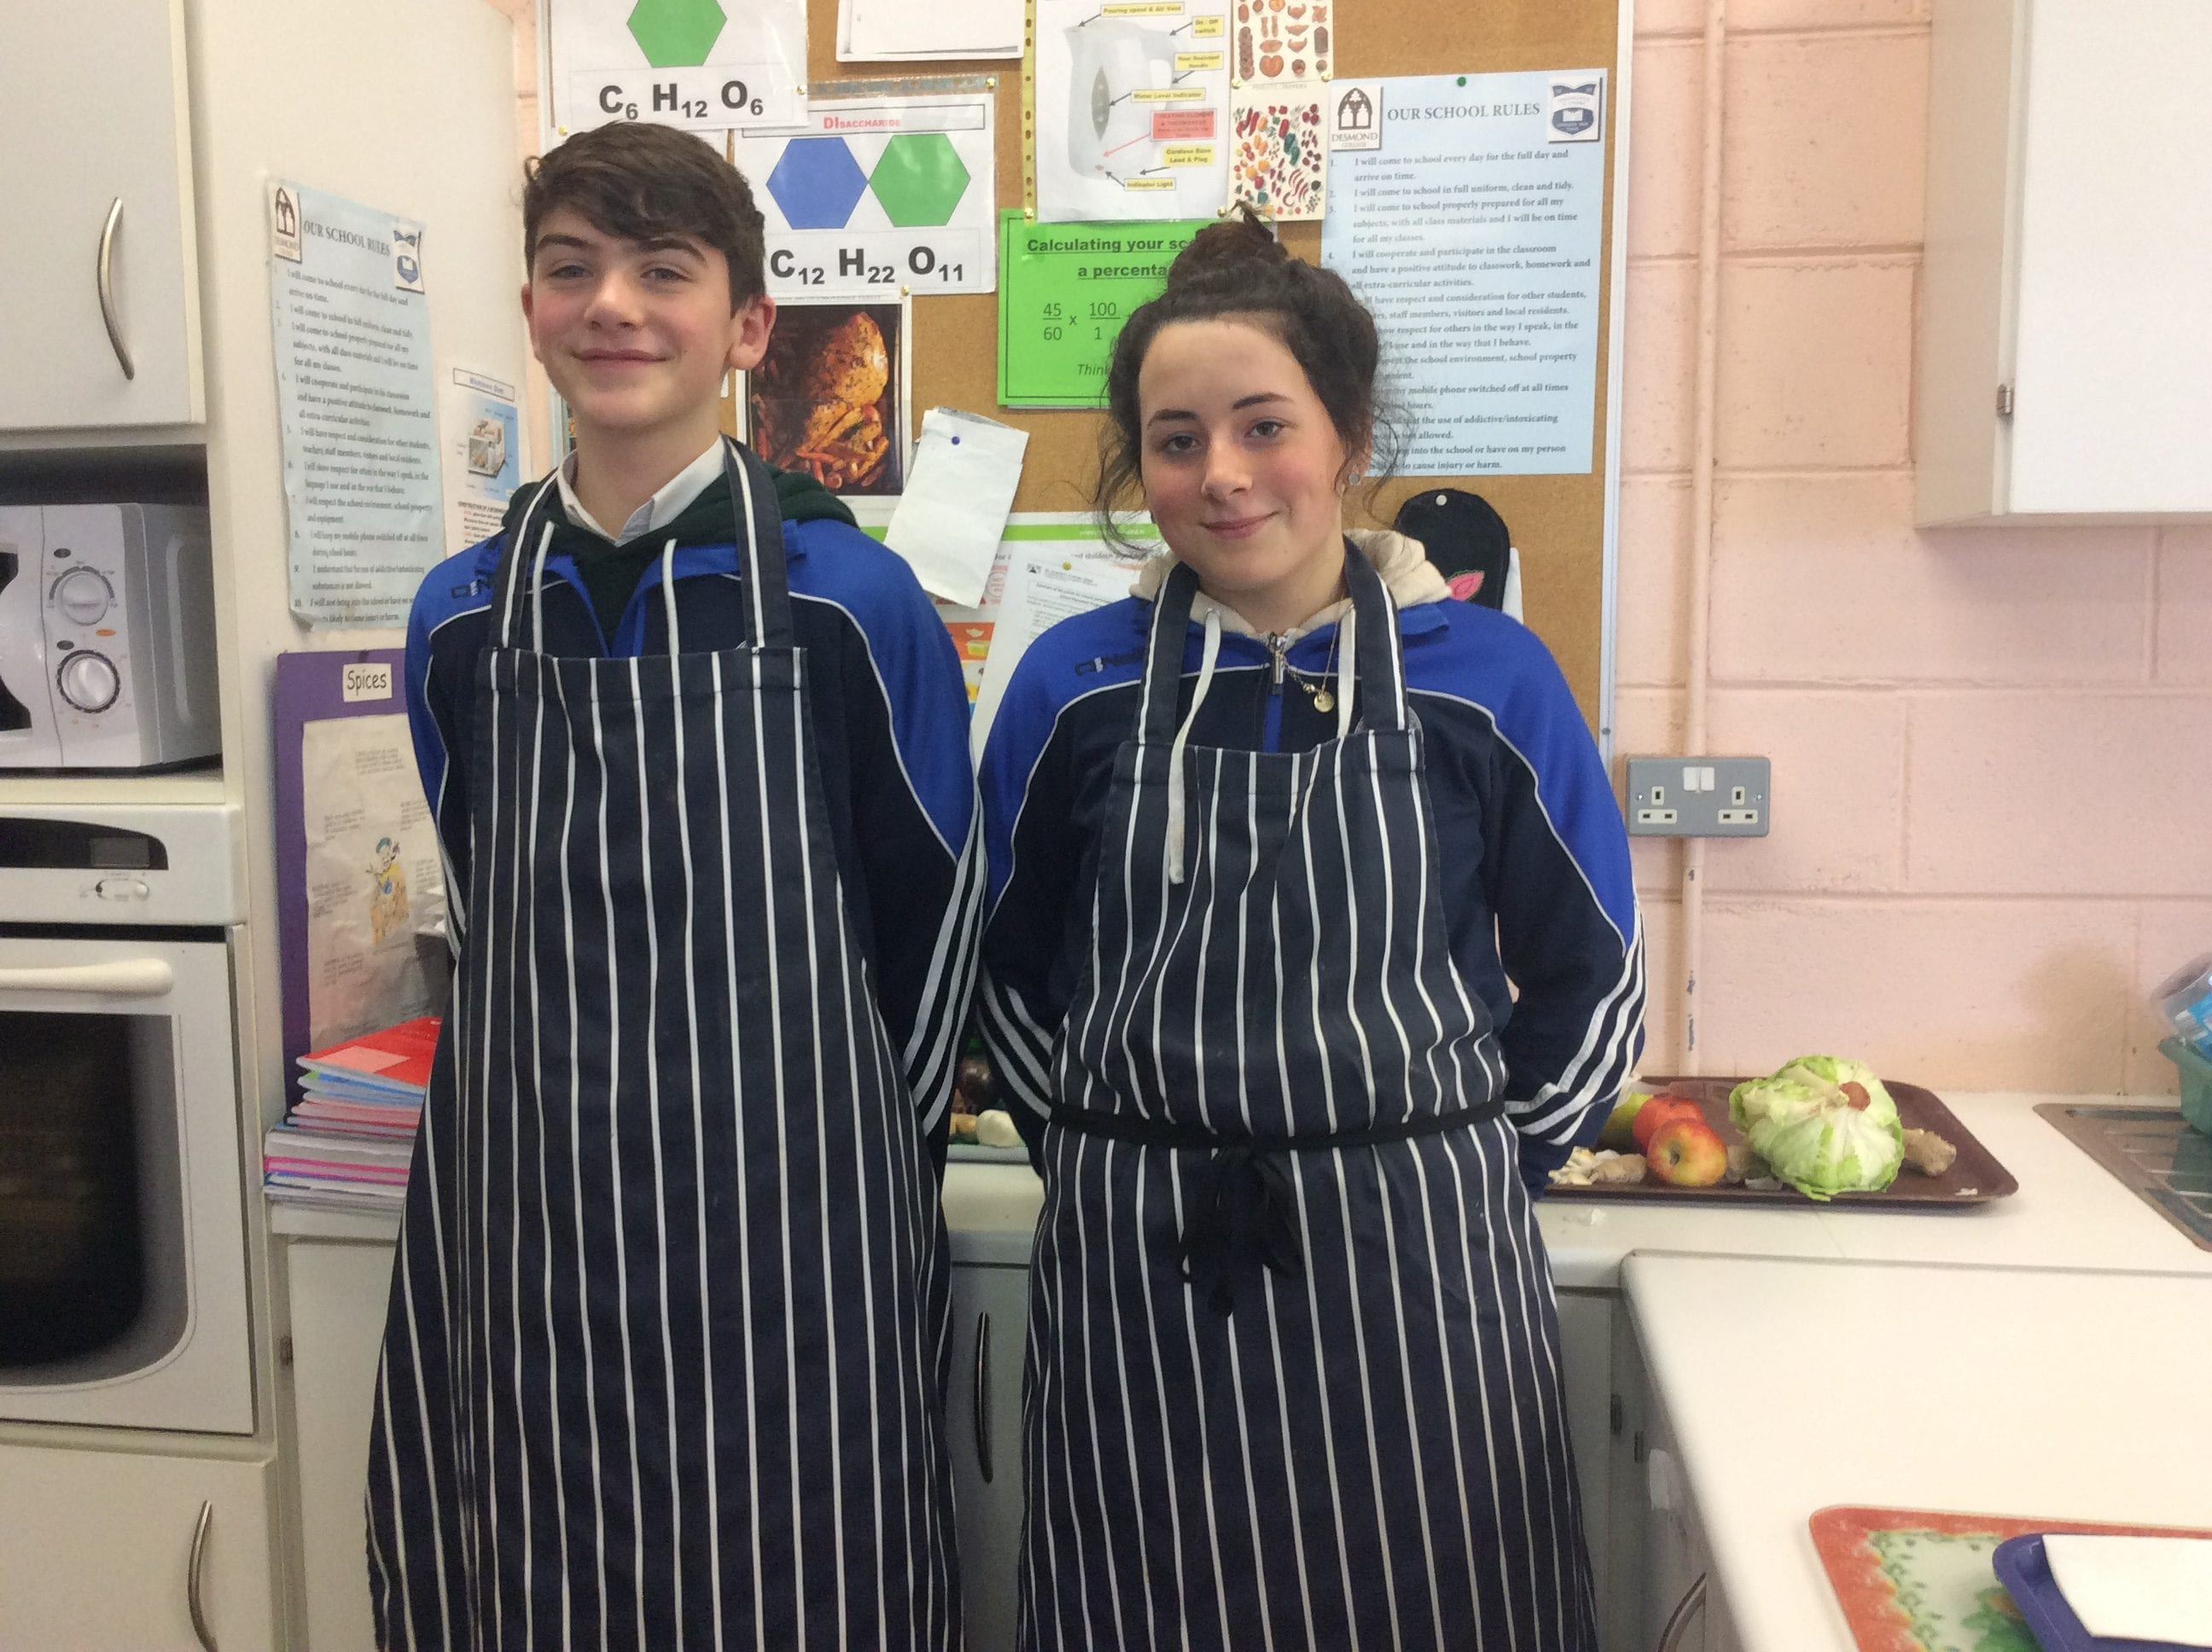 Jan 2018: Winner of the Desmond College 2nd year Healthy Eating Cook Off